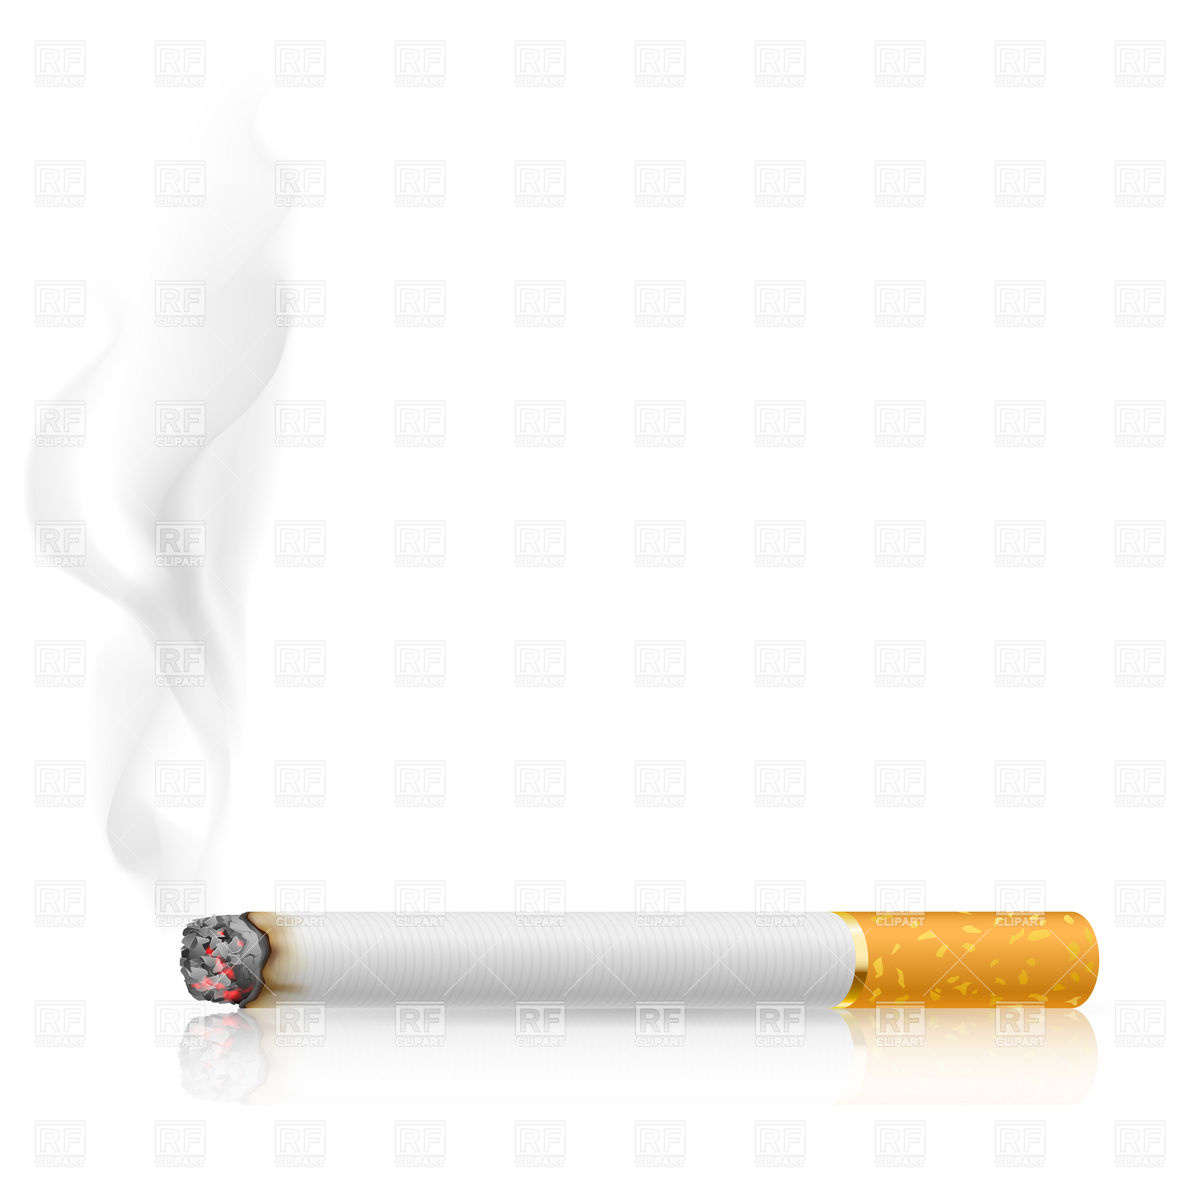 Smoking And Burning Cigarette 7372 Healthcare Medical Download